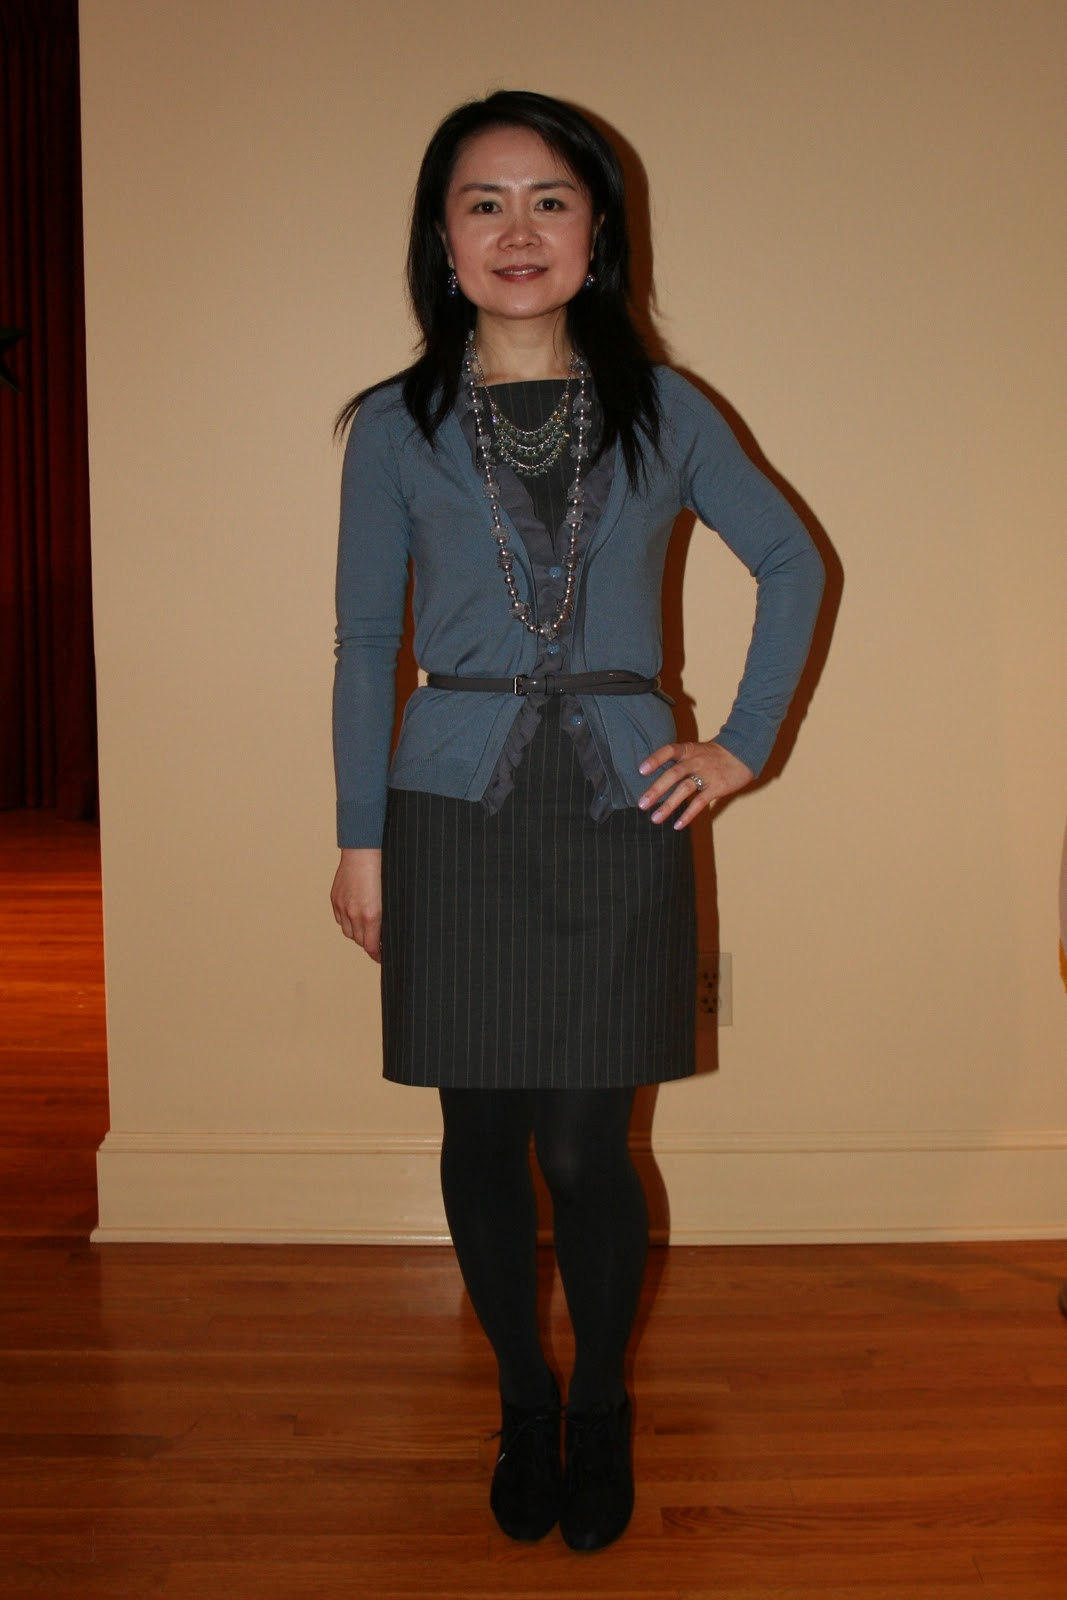 Vicky\'s Daily Fashion Blog: OOTD: What I wore to the piano recital